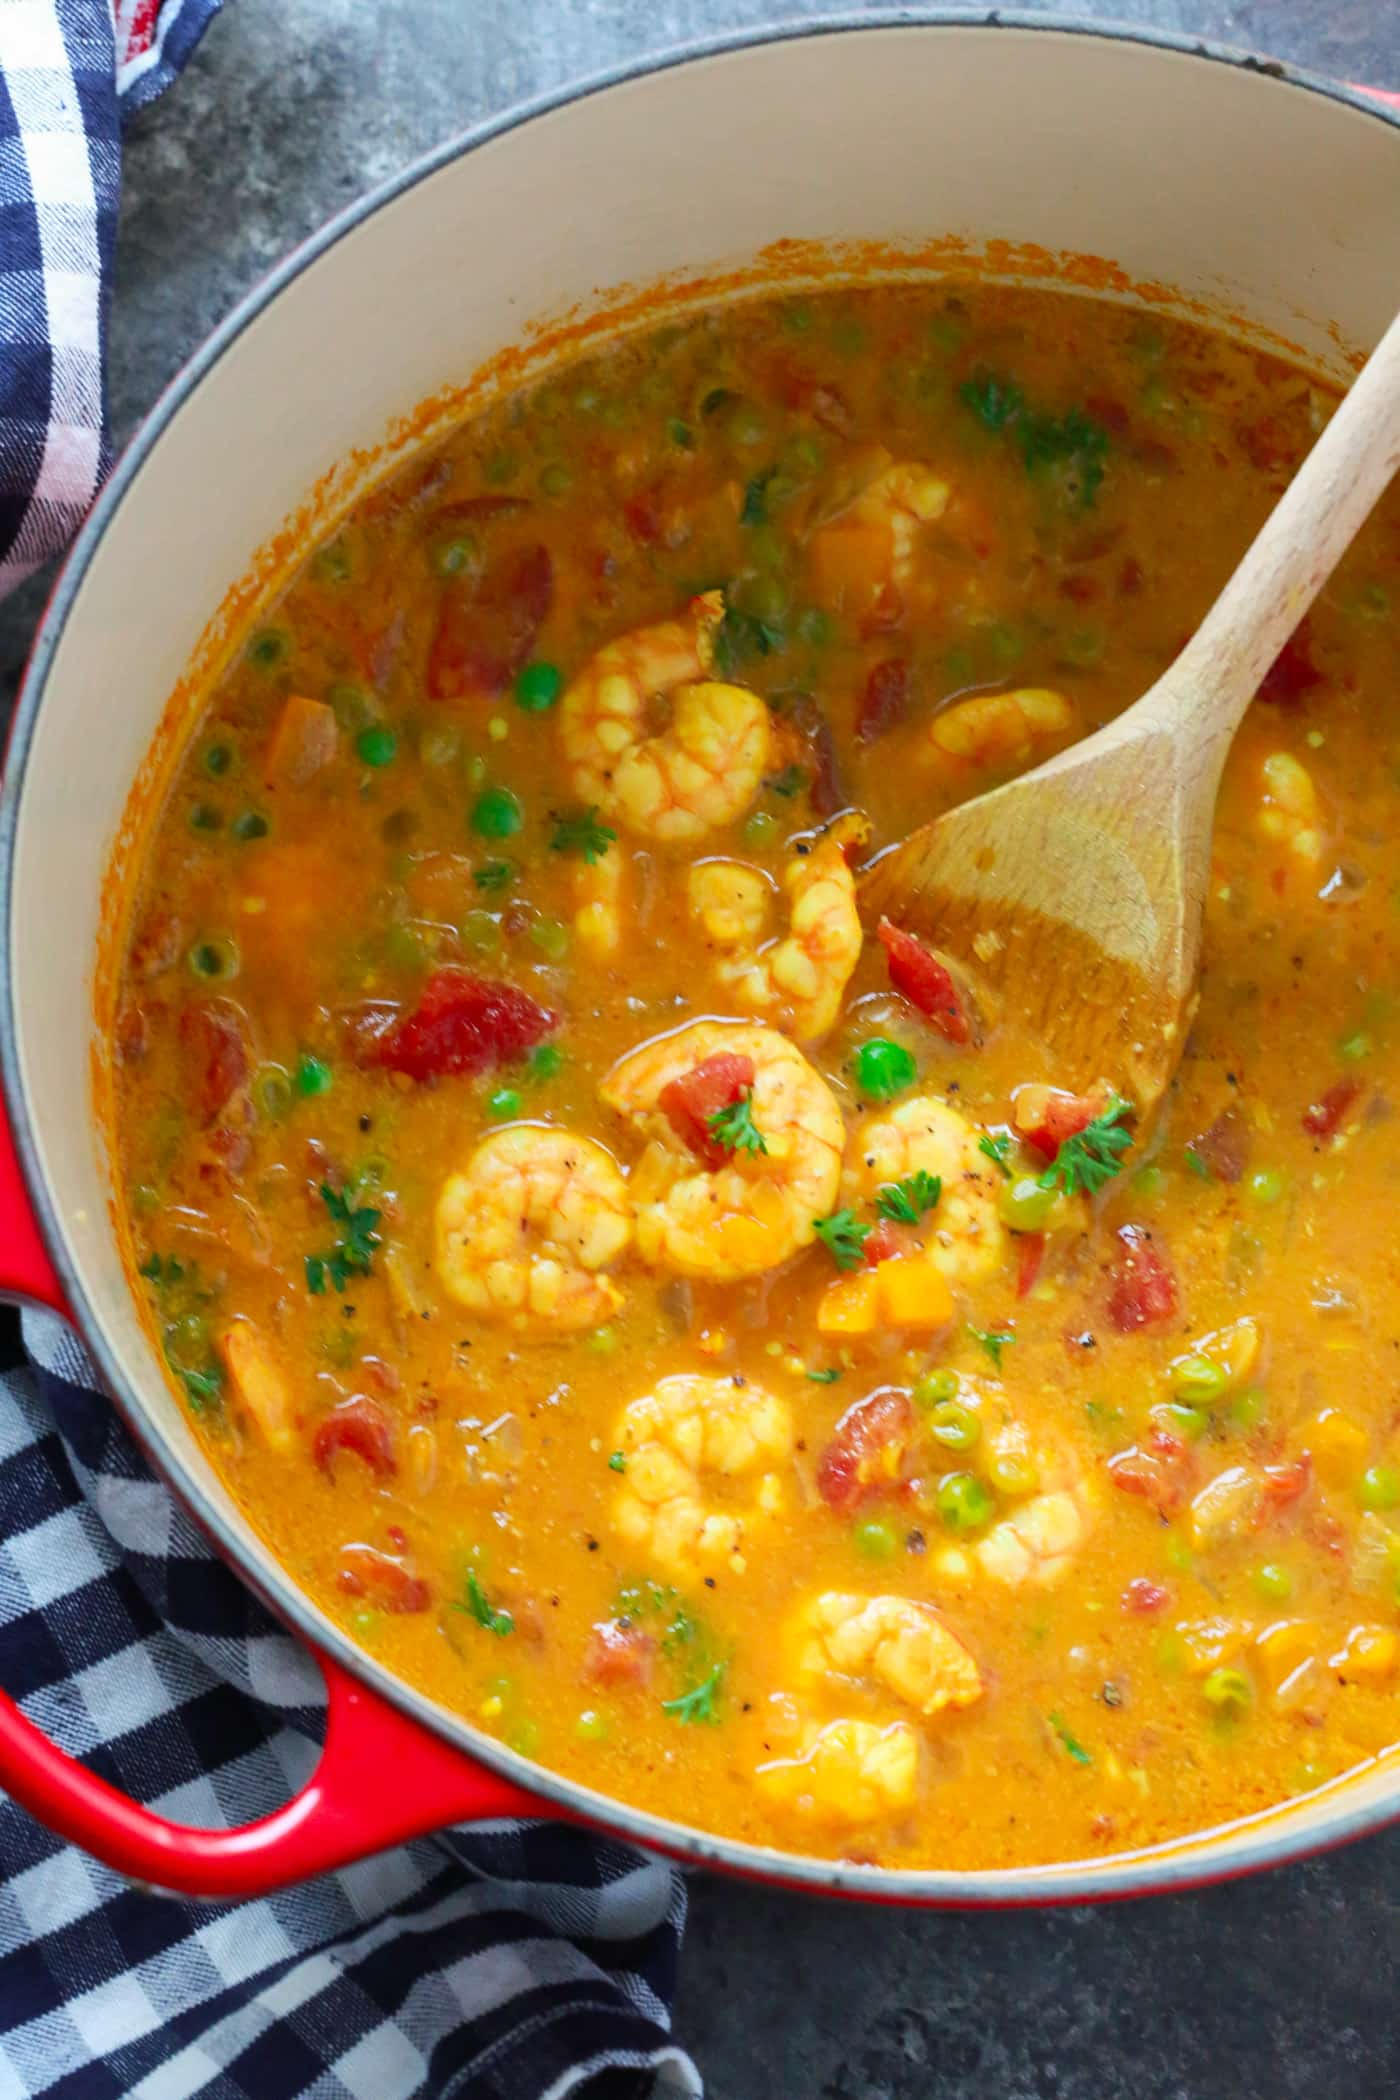 A red dutch oven with a coconut curry shrimp recipe inside.